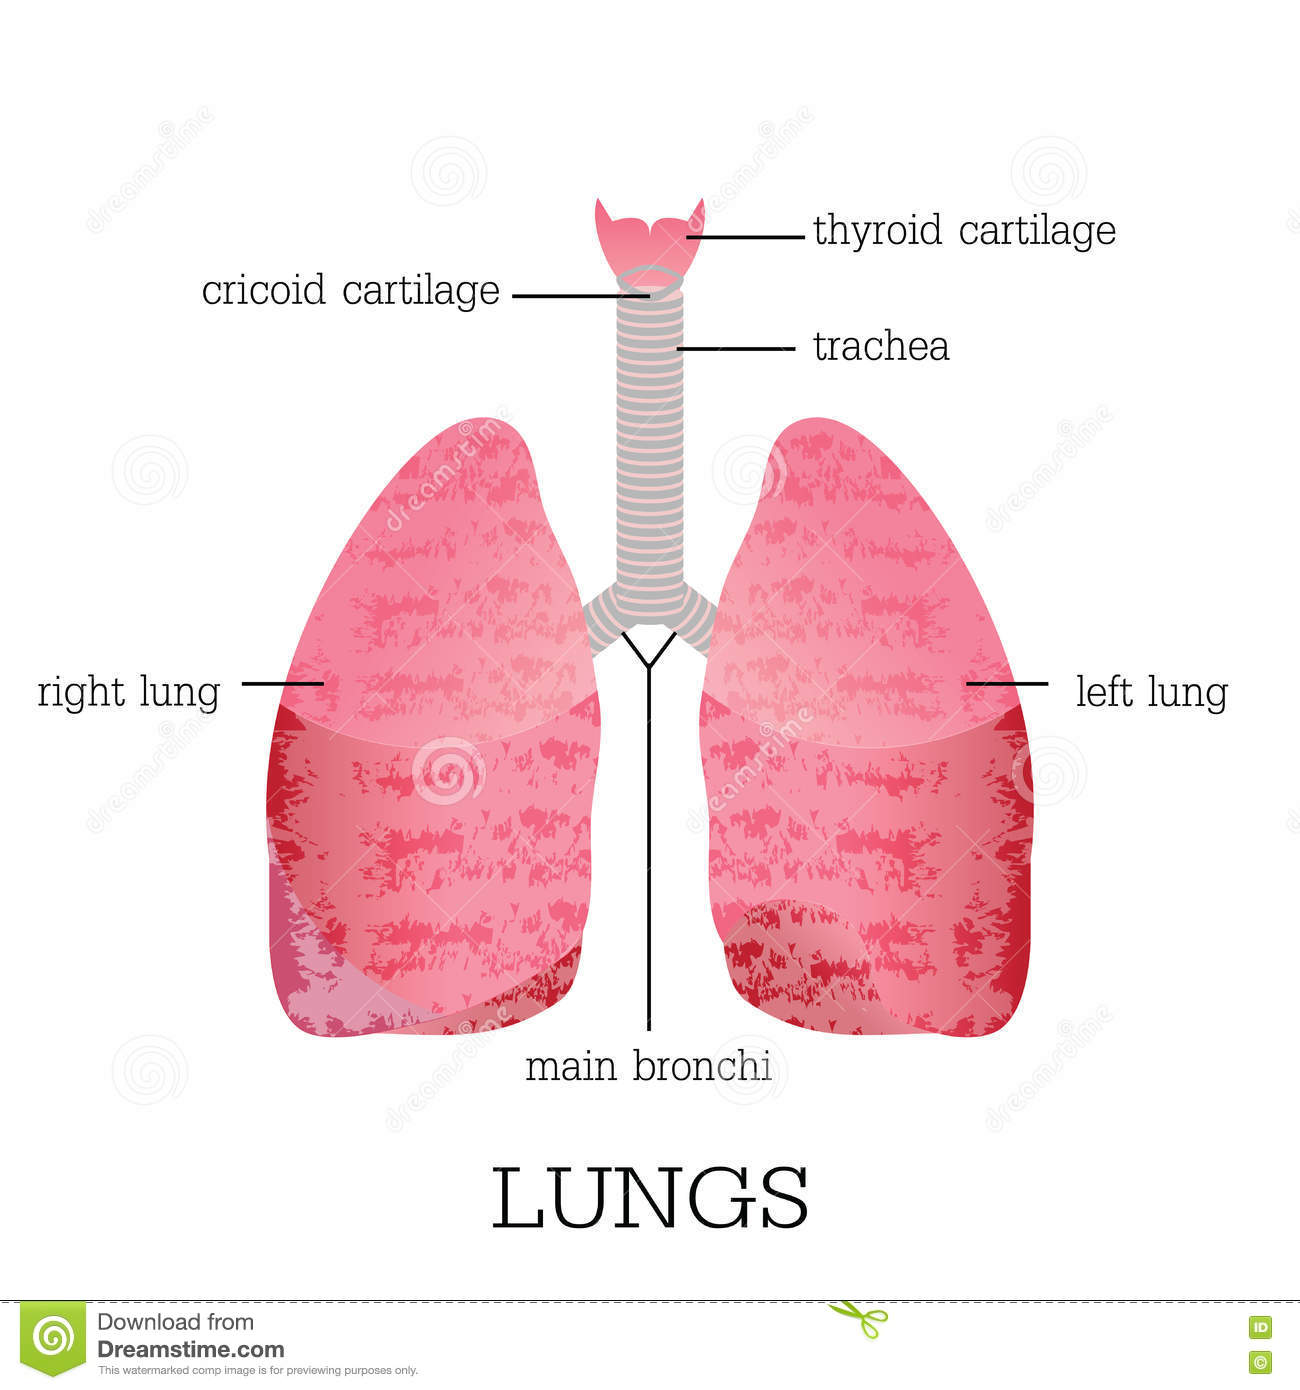 lung lobes diagram the treasure of lemon brown plot human lungs anatomy. stock vector - image: 75034636